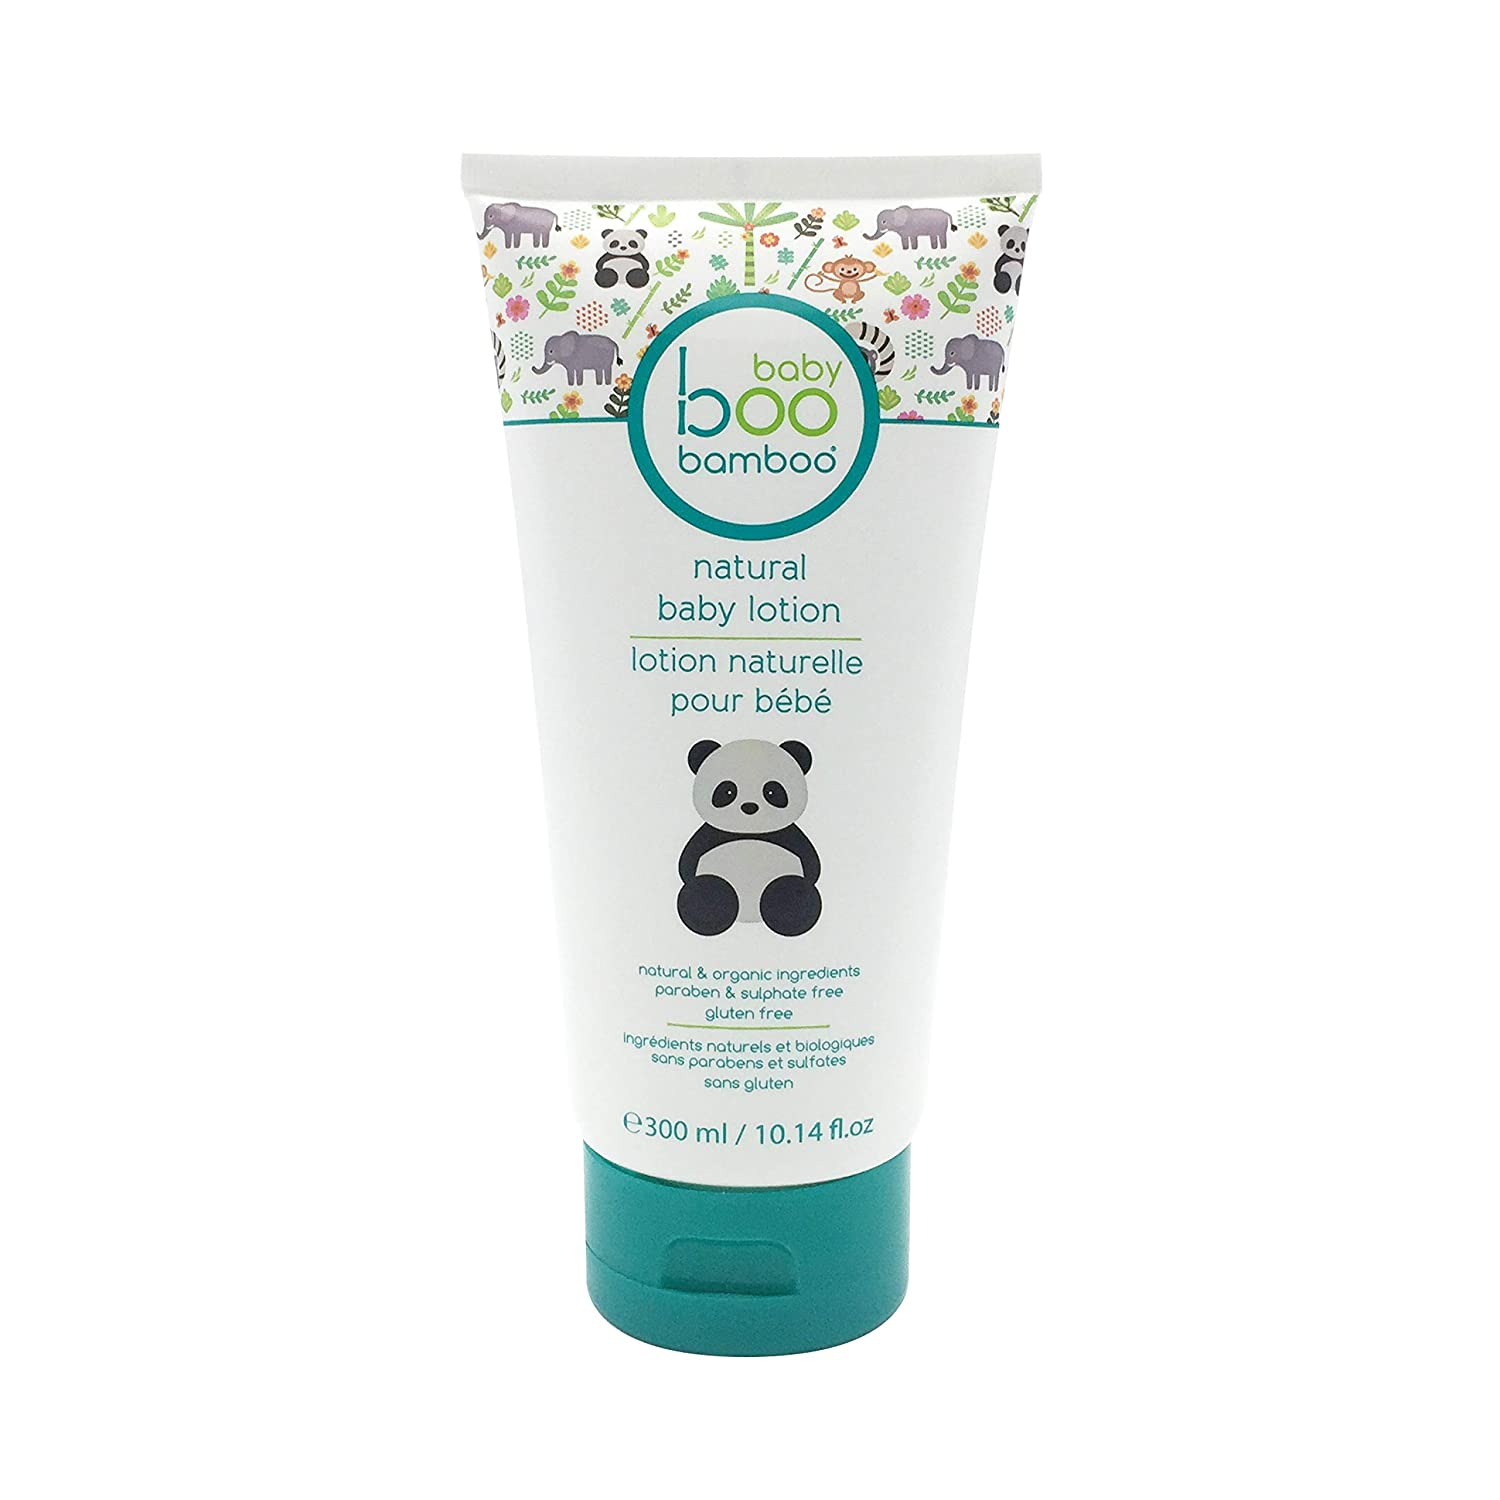 Boo Bamboo Silky Smooth Baby lotion Baby boo lotion 300ml 8021